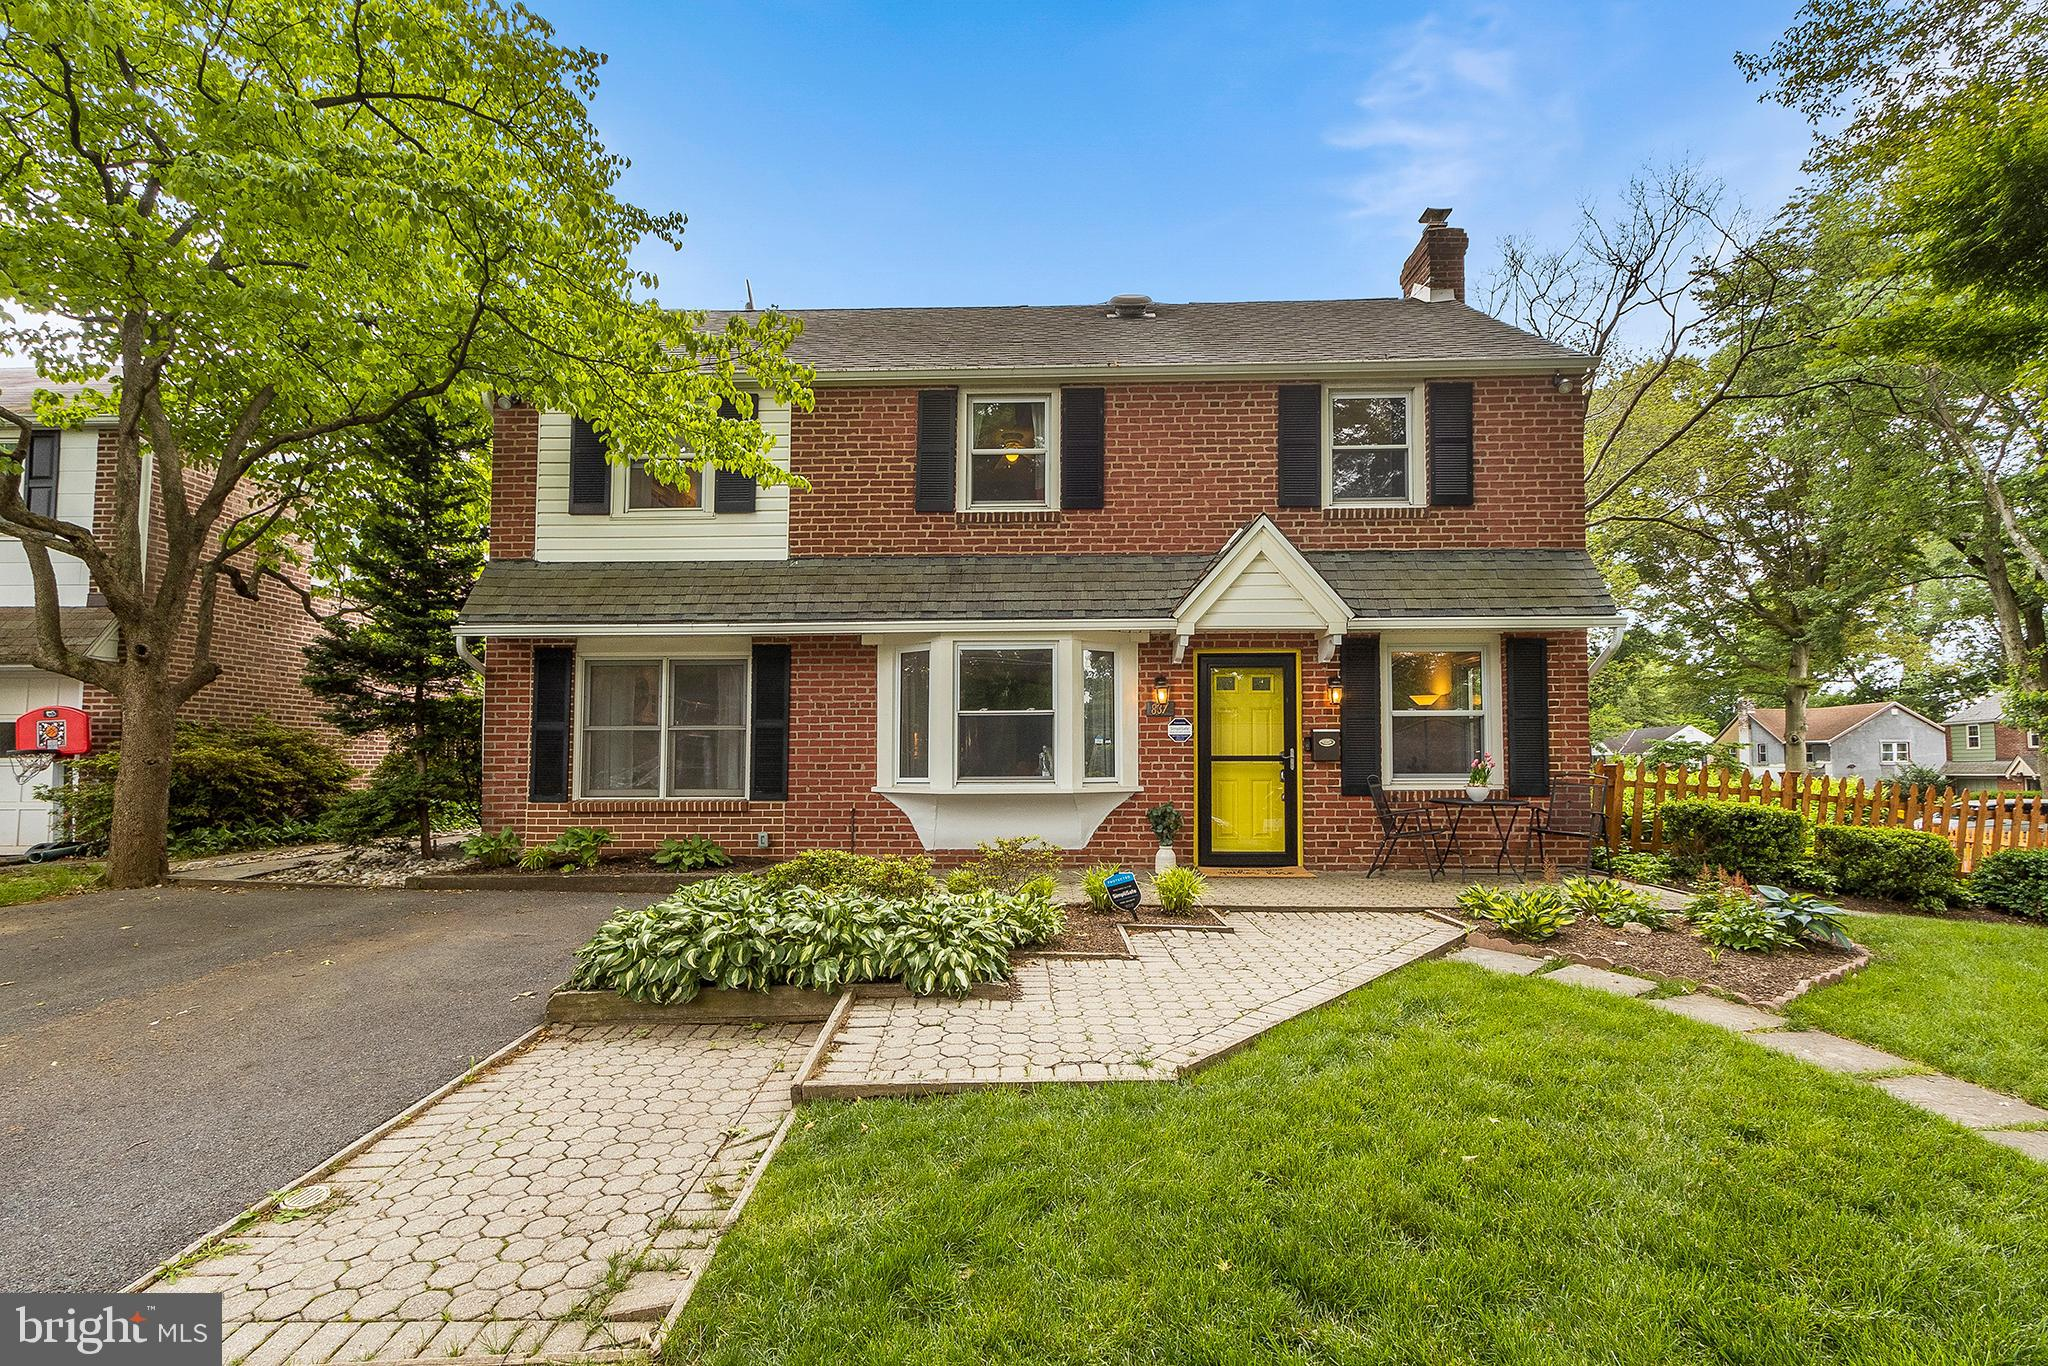 This traditional brick colonial home is ideally located on a fenced corner property with exceptionally deep side and back yards. The updated interior and open concept design offers spacious living on three finished levels. The main level is transitional and features continuous hardwood flooring throughout. The front entrance opens into a casual Living Room and is highlighted by the smartly outfitted Chef's Kitchen and large open Dining area with a deep bay window and painted white brick fireplace.  The spacious and bright Family Room features built-in bookcases and storage at the side entrance with access to the raised brick terrace and deck opening to the flat rear yard privatized by evergreens.  This room is the ideal everything space, great for studying, television or entertaining.  Ascend a turned staircase to the Owners Suite featuring truly superior space and styling. Vaulted ceilings, an exquisite bath completed in 2020 with a spacious spa- like shower, wash-stand height vanities, terrific light, and complimented by a large walk-in closet. Three additional guest bedrooms, which also offer ideal home office space, recently updated bath with double sinks, a laundry area and storage complete this level. The lower level was recently renovated and provides a combination of recreation, work, and gym space, craft sink, and more storage.  Perfectly located on the lower part of the mainline, with all of its conveniences including easy access to the city, Whole Foods and Lower Merion Schools.